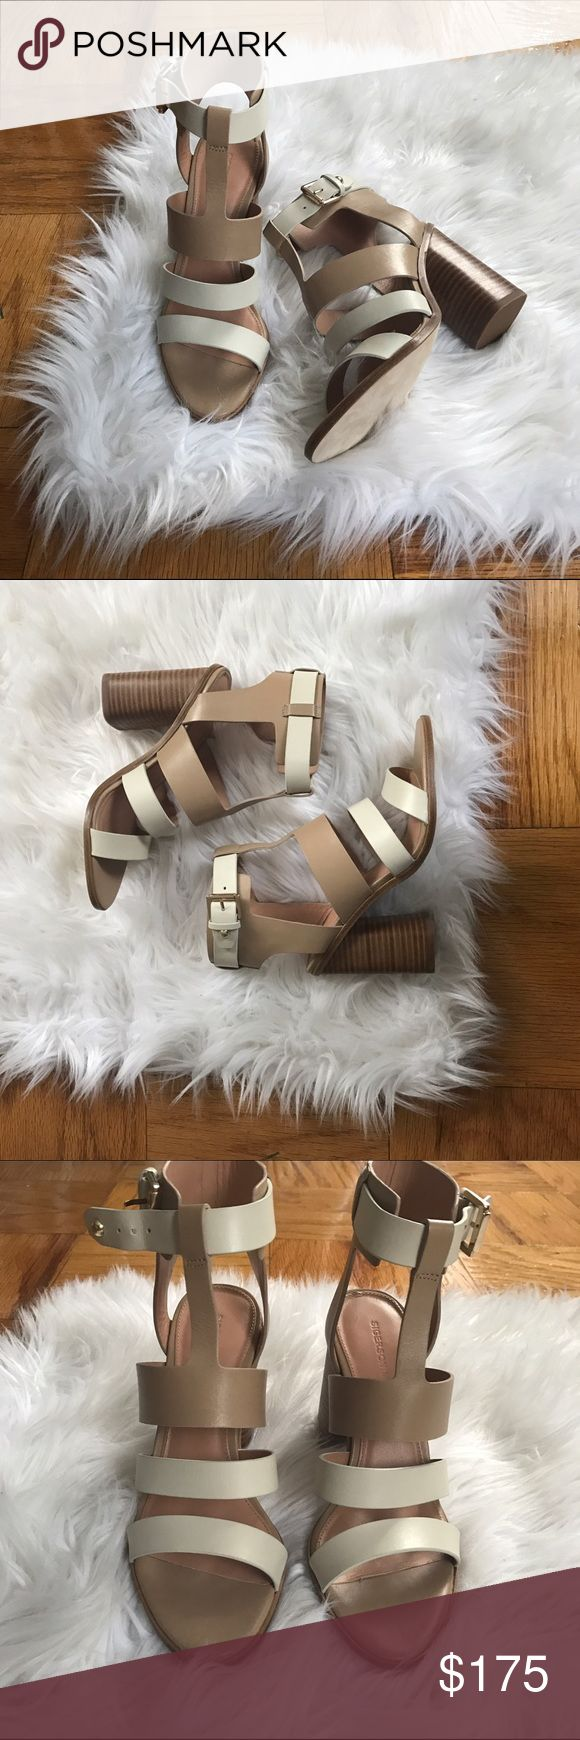 NWOT SIGERSON MORRISON Coria Leather Sandals Absolutely beautiful Coria Leather block heel sandals. Brand new, never worn, perfect condition comes in original box. Sigerson Morrison Shoes Sandals